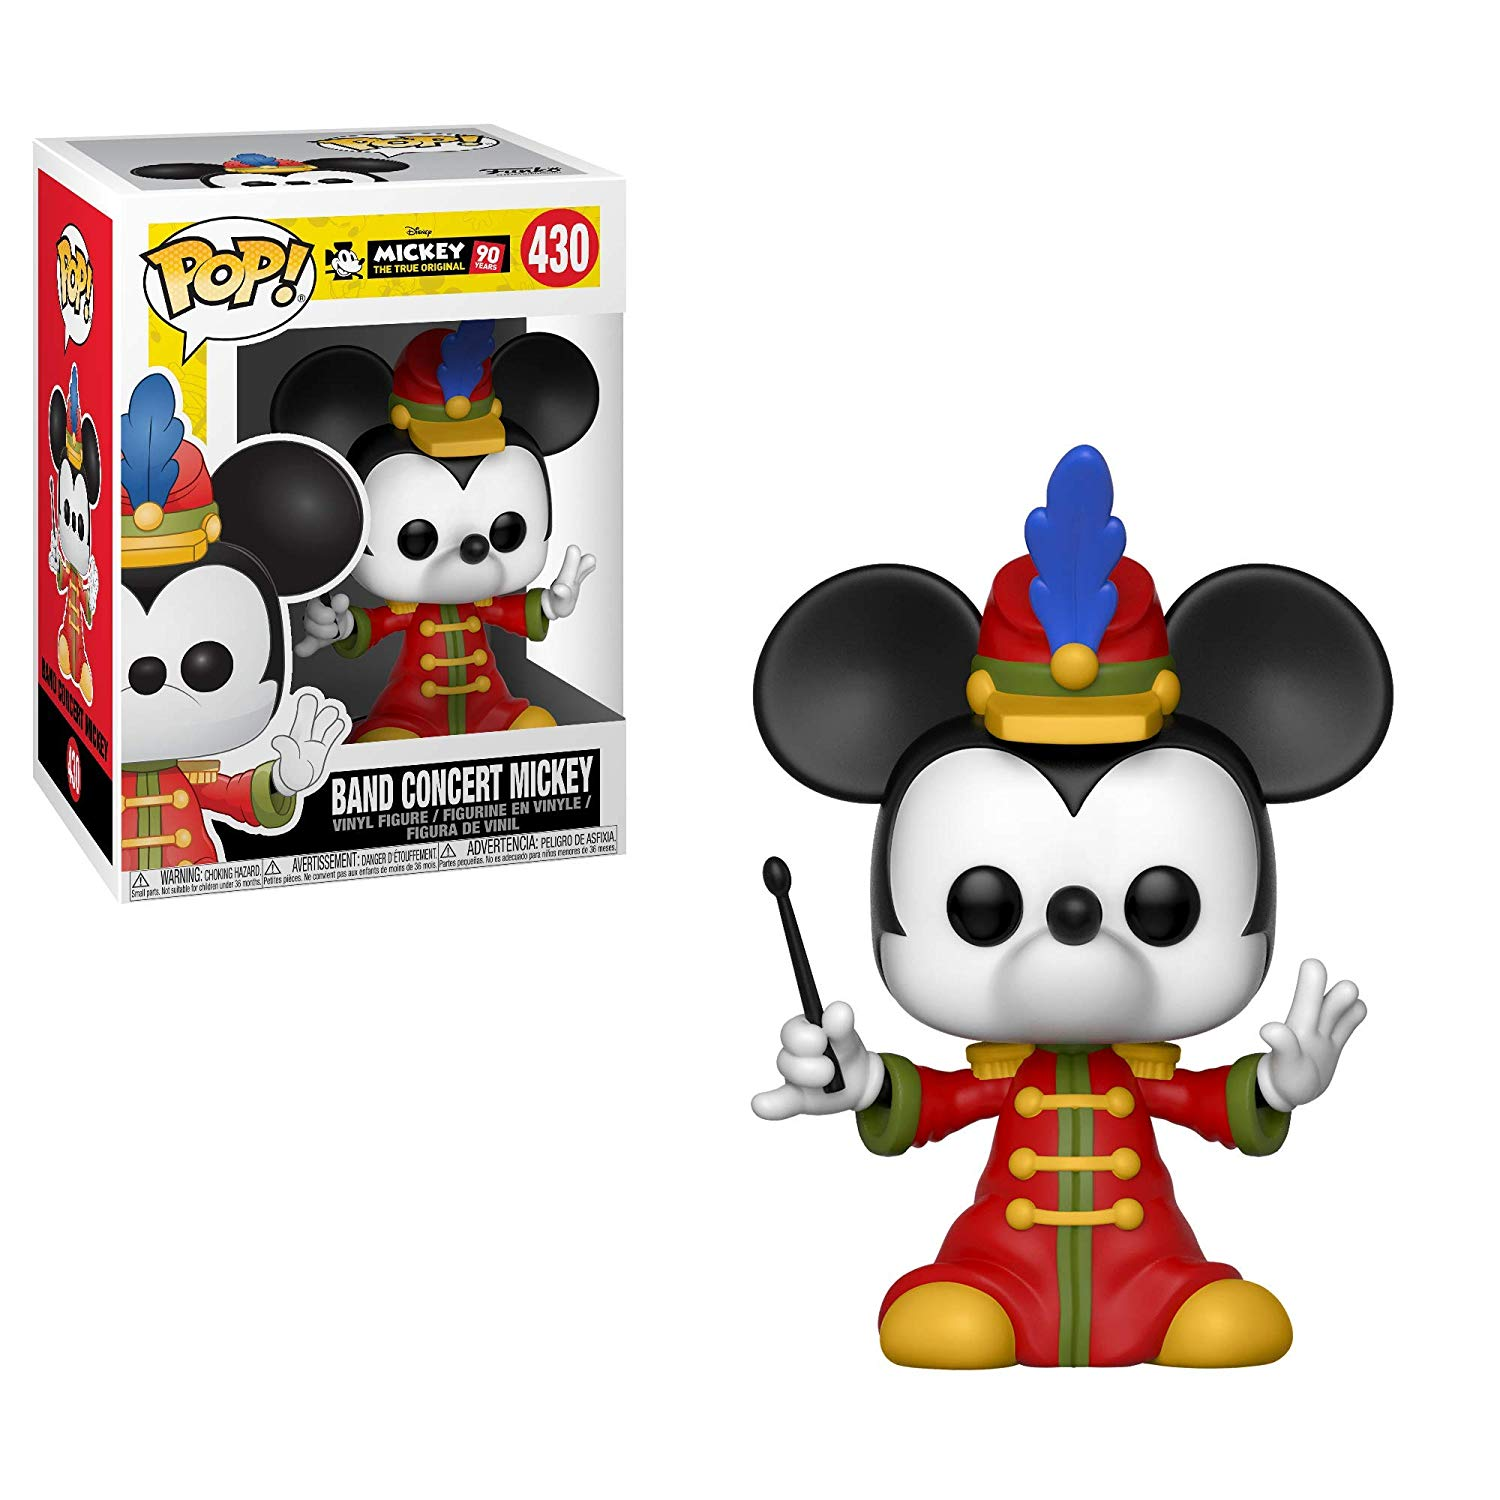 Funko POP! Mickey 90 years Band Concert Mickey #430